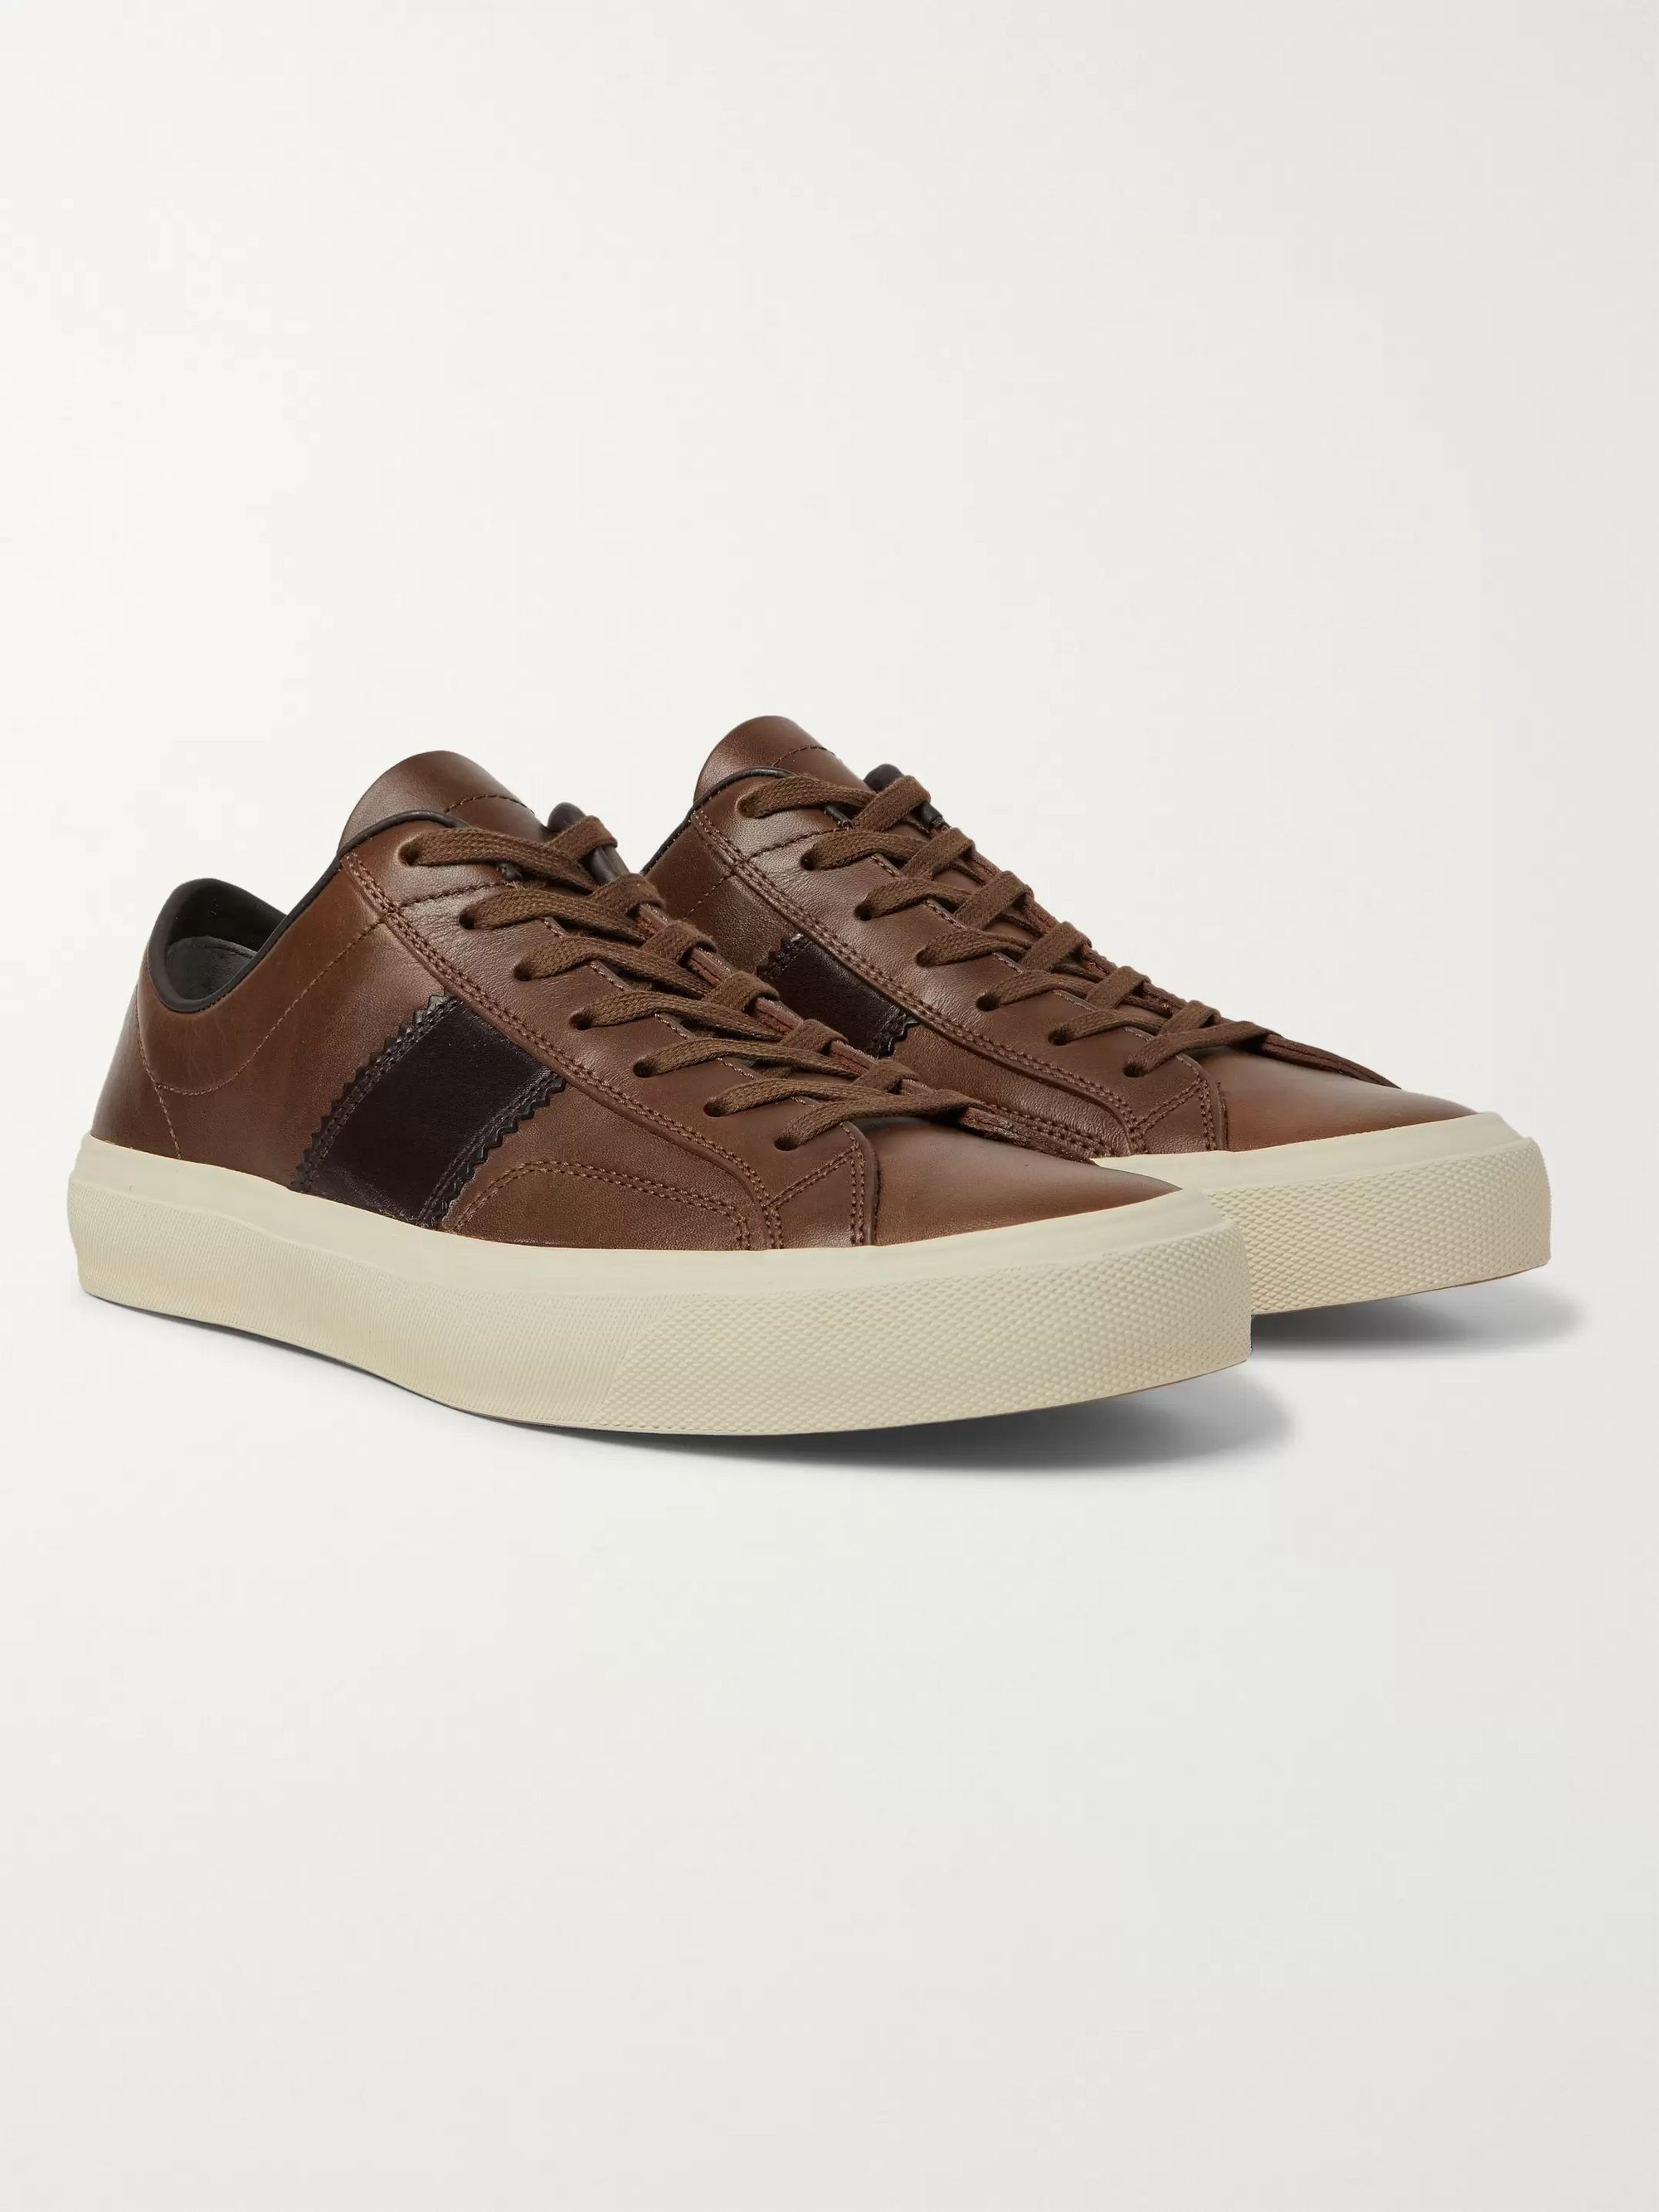 TOM FORD Cambridge Leather Sneakers